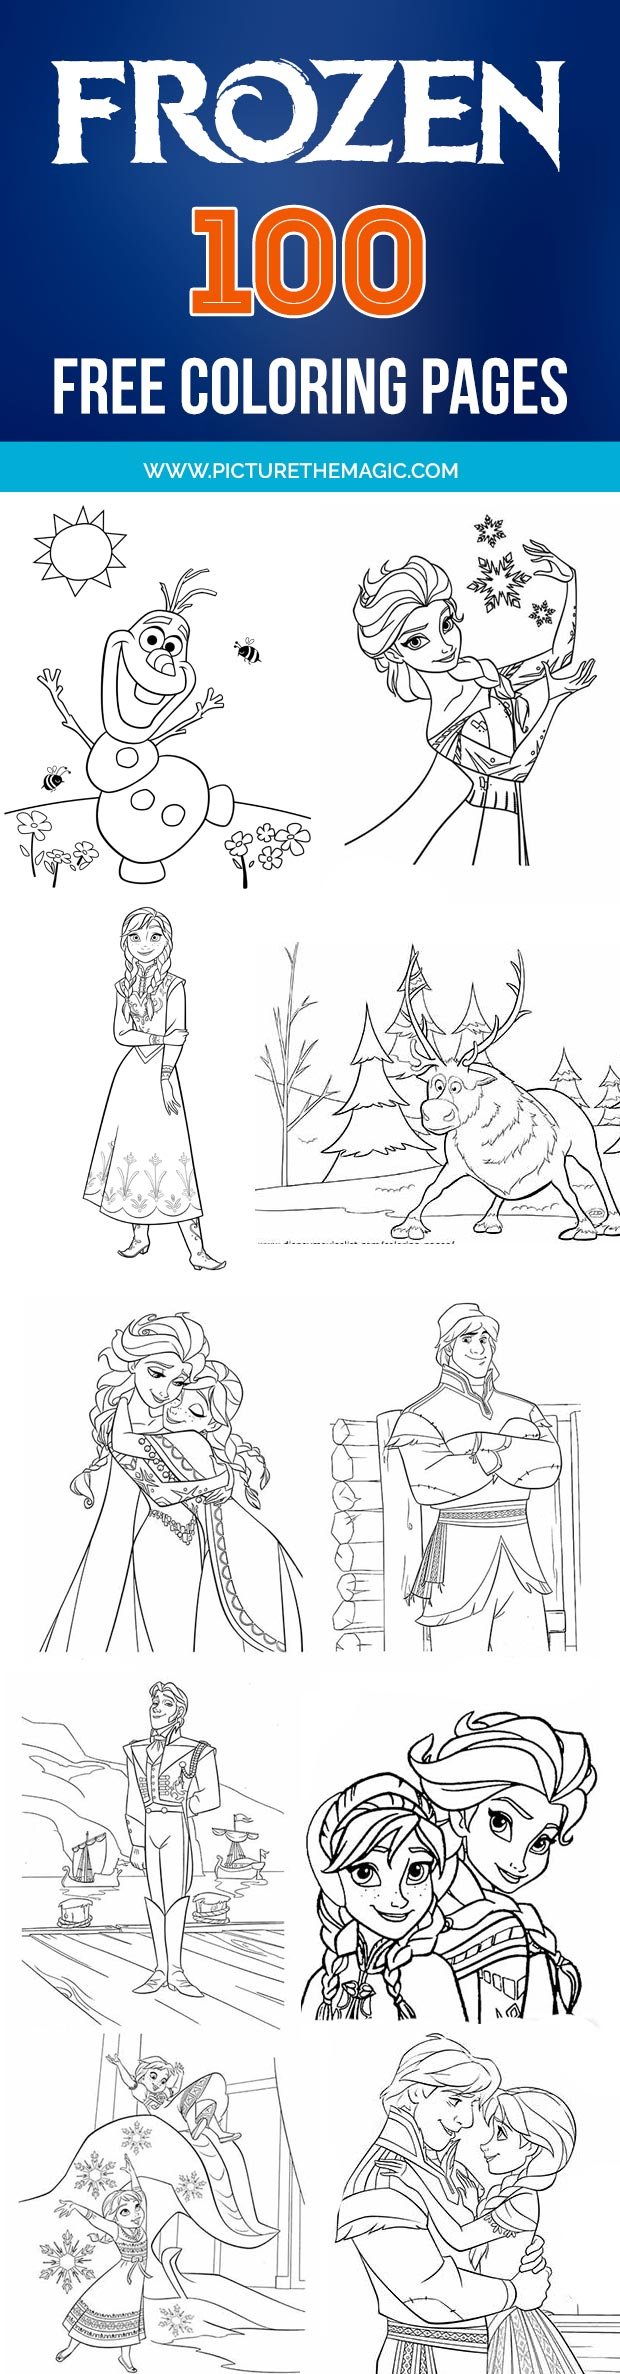 FREE! 100 Frozen Coloring Pages. Print them one at a time or download them all at once.